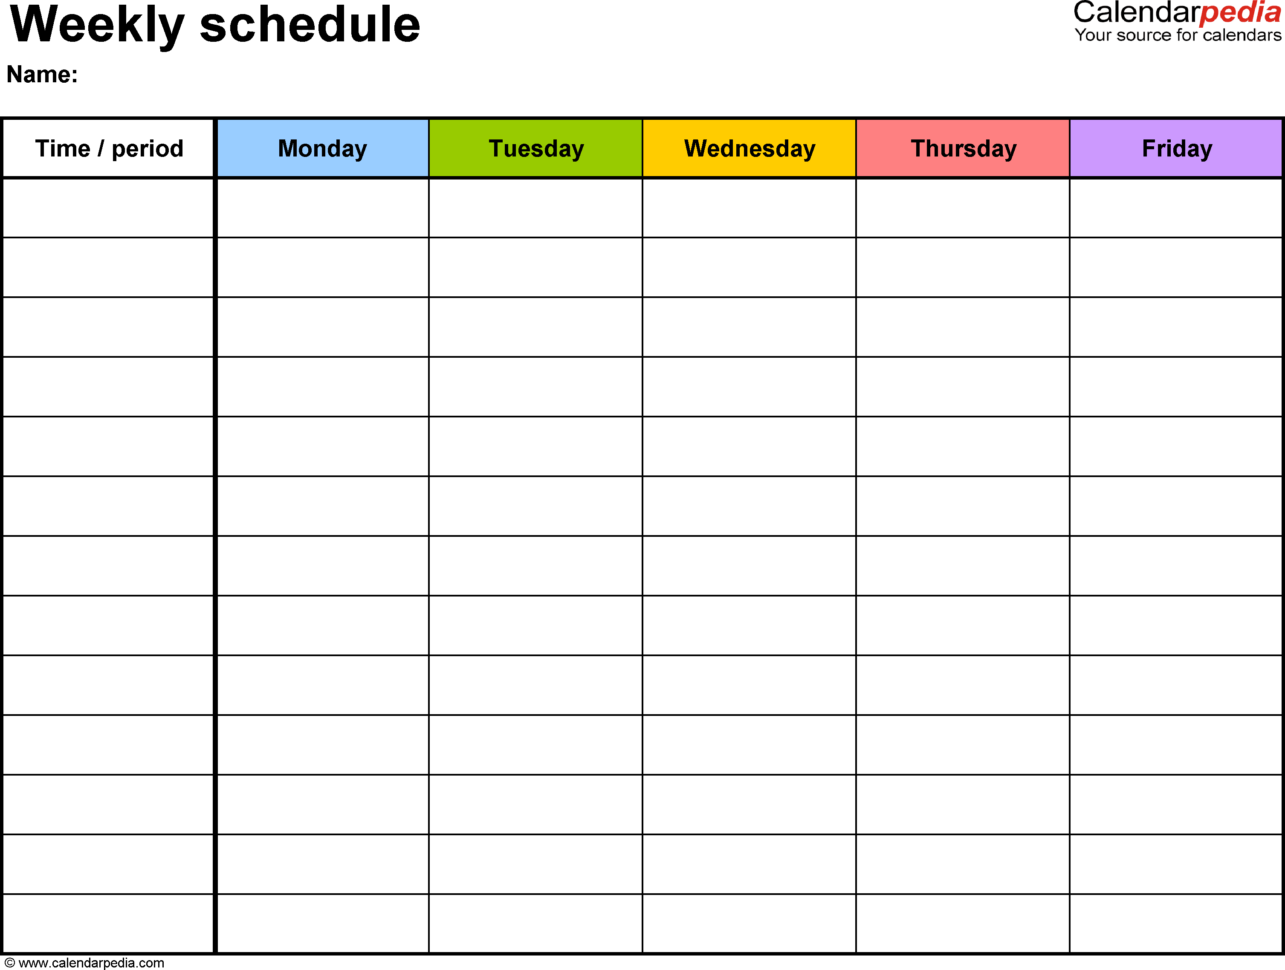 Roster Spreadsheet Template Free For Free Weekly Schedule Templates For Excel  18 Templates